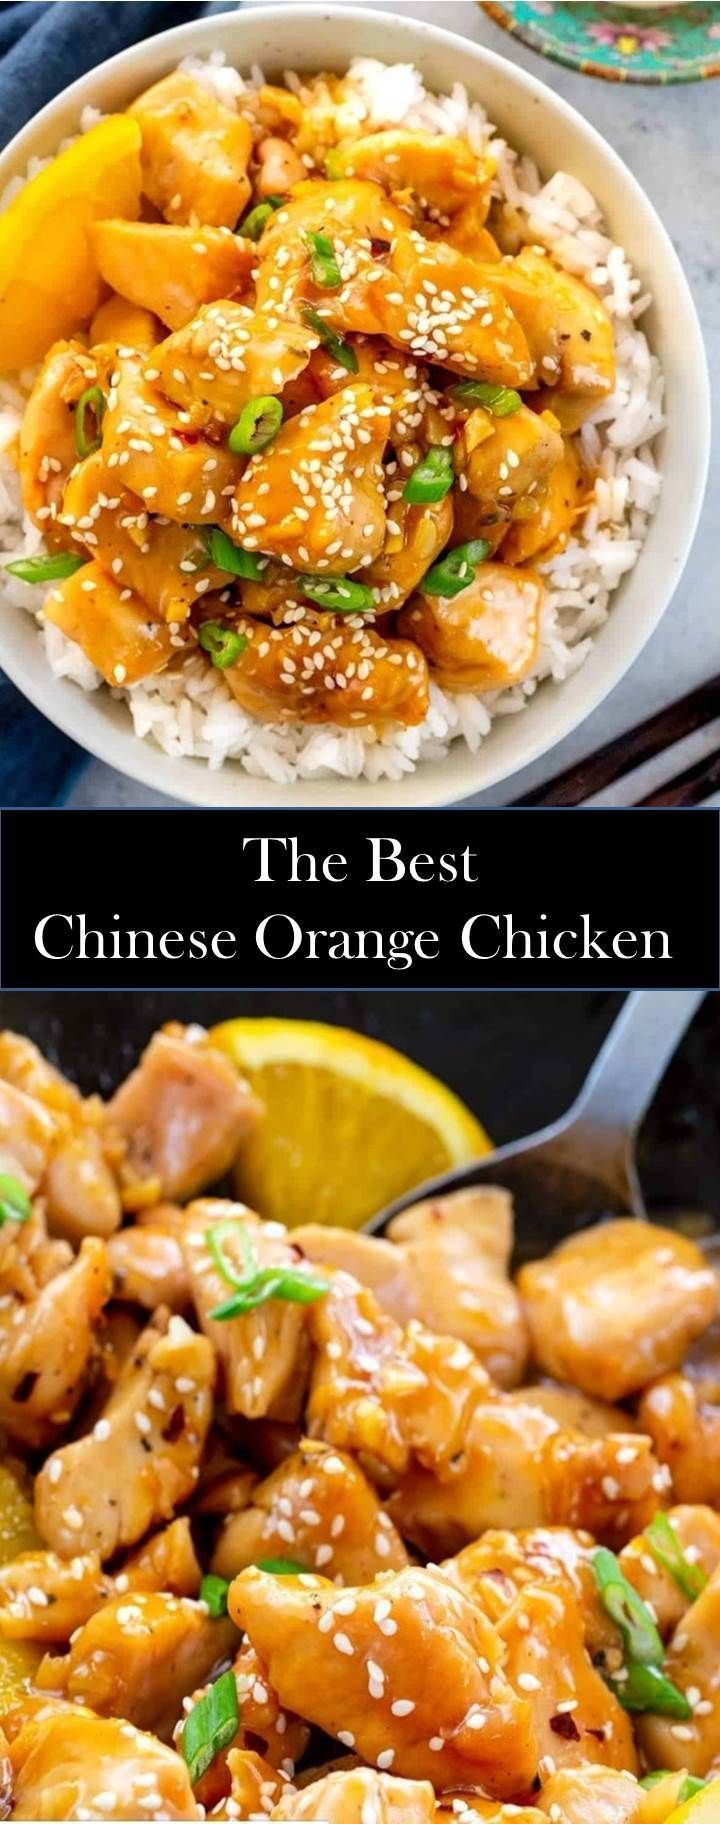 ★★★★★973 reviews :   Special Foods And Drinks Are Ready To Accompany You ! #Chinese #Orange #Chicken   This simple Chinese orange chicken formula is a more advantageous custom made choice. Lean chicken bosom pan-seared and stewed in a sweet and tart orange sauce. #chineseorangechicken ★★★★★973 reviews :   Special Foods And Drinks Are Ready To Accompany You ! #Chinese #Orange #Chicken   This simple Chinese orange chicken formula is a more advantageous custom made choice. Lean #chineseorangechicken